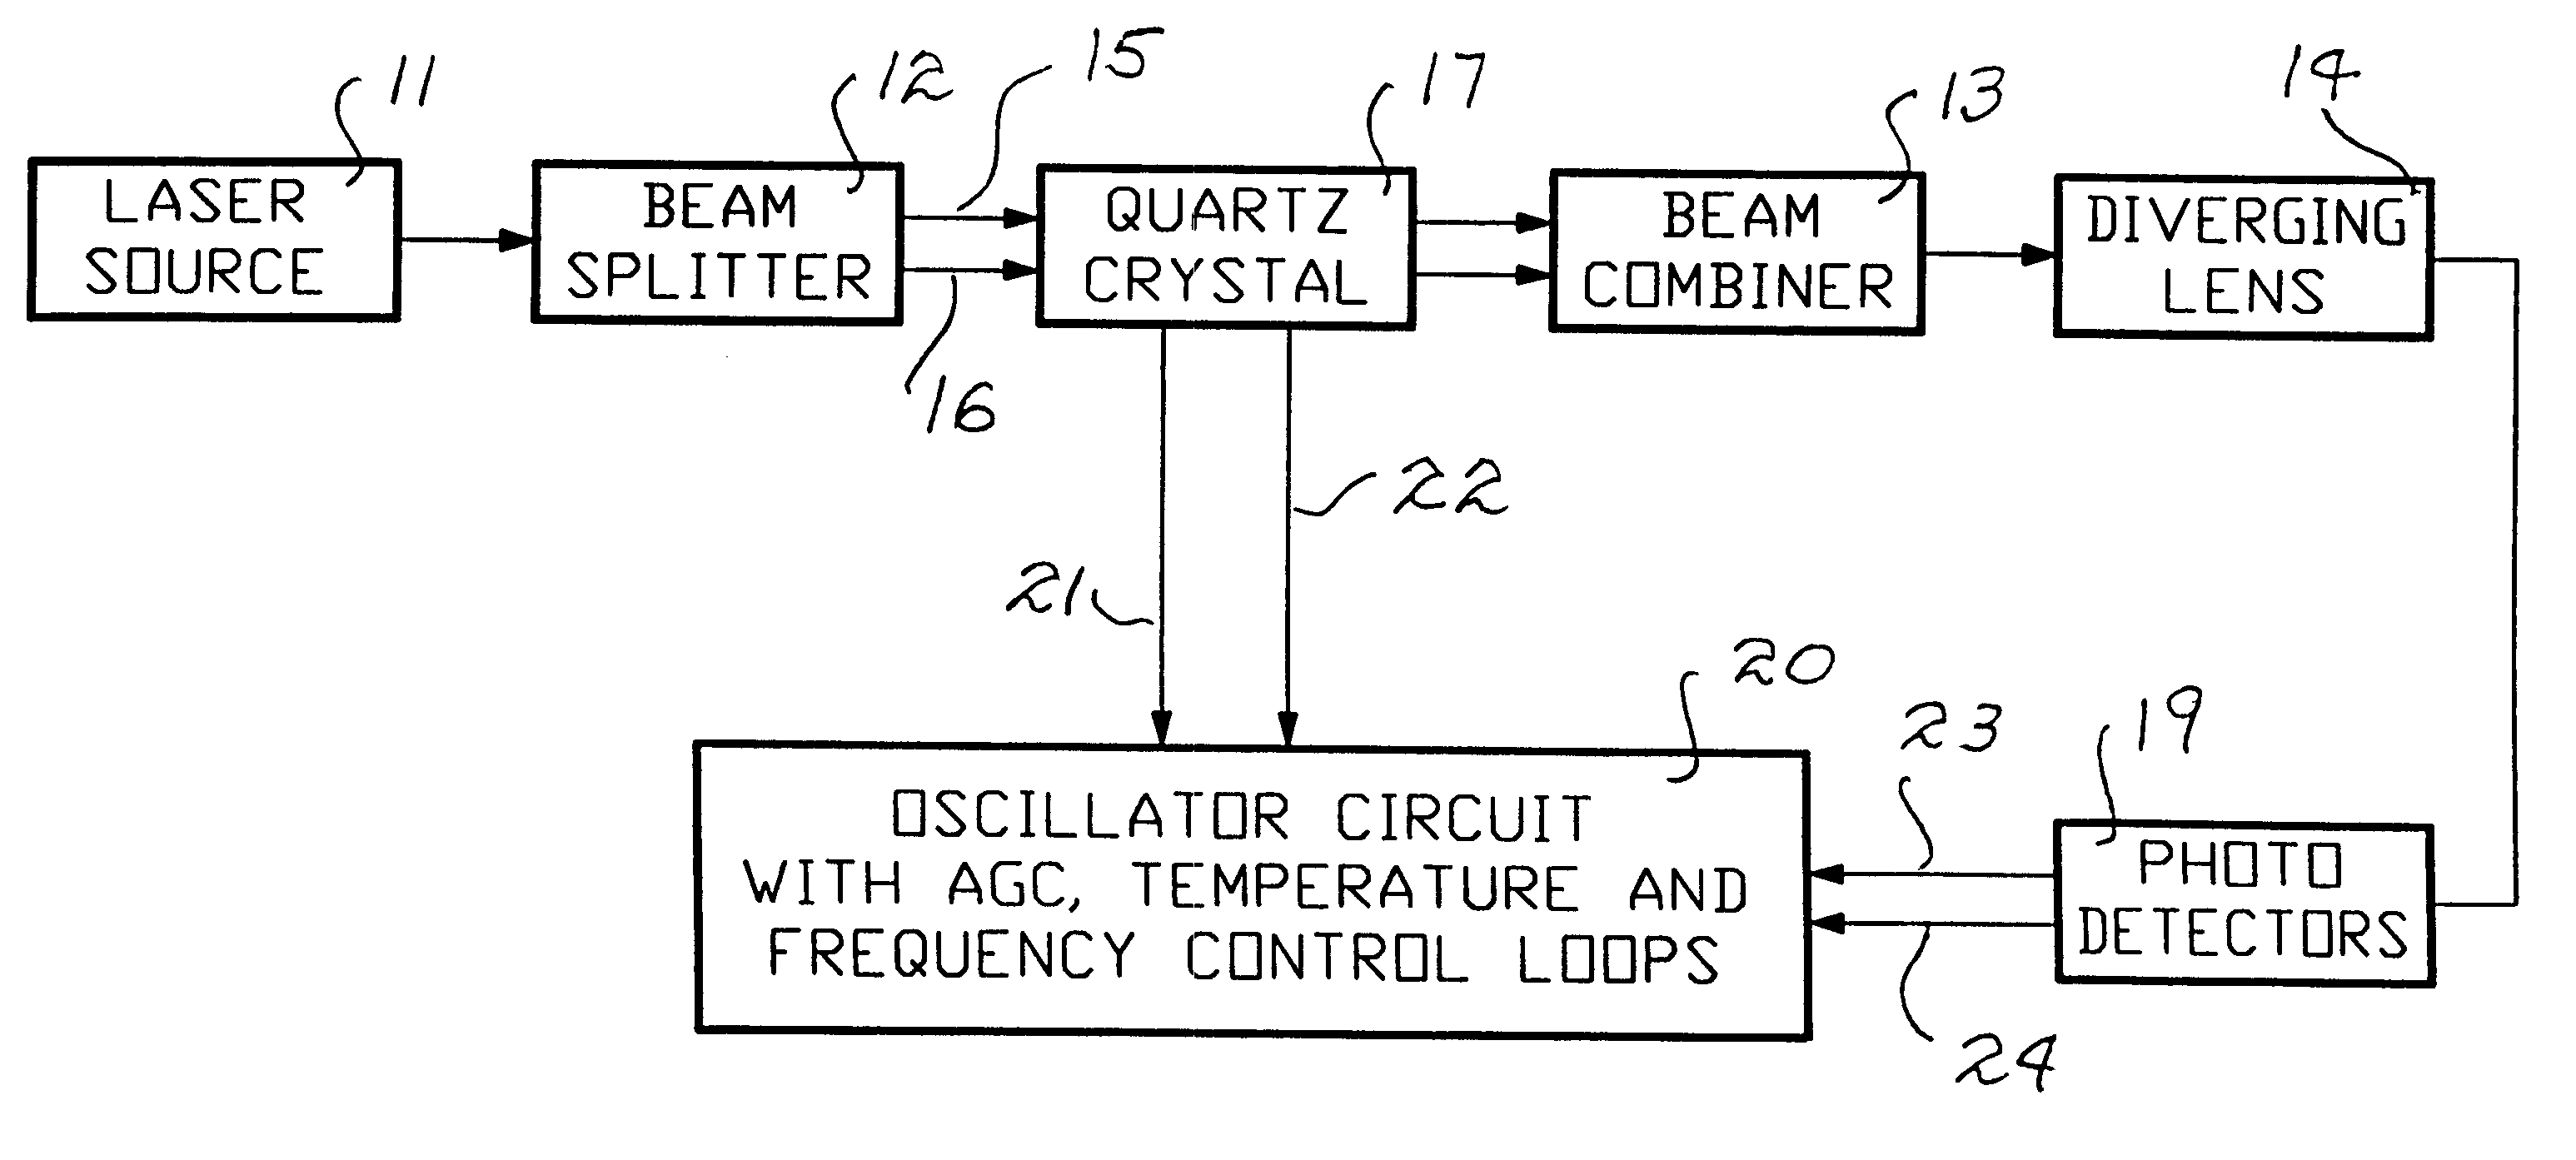 Patent Us6388534 Laser Controlled Crystal And Dielectric Resonator Oscillator Circuits Drawing